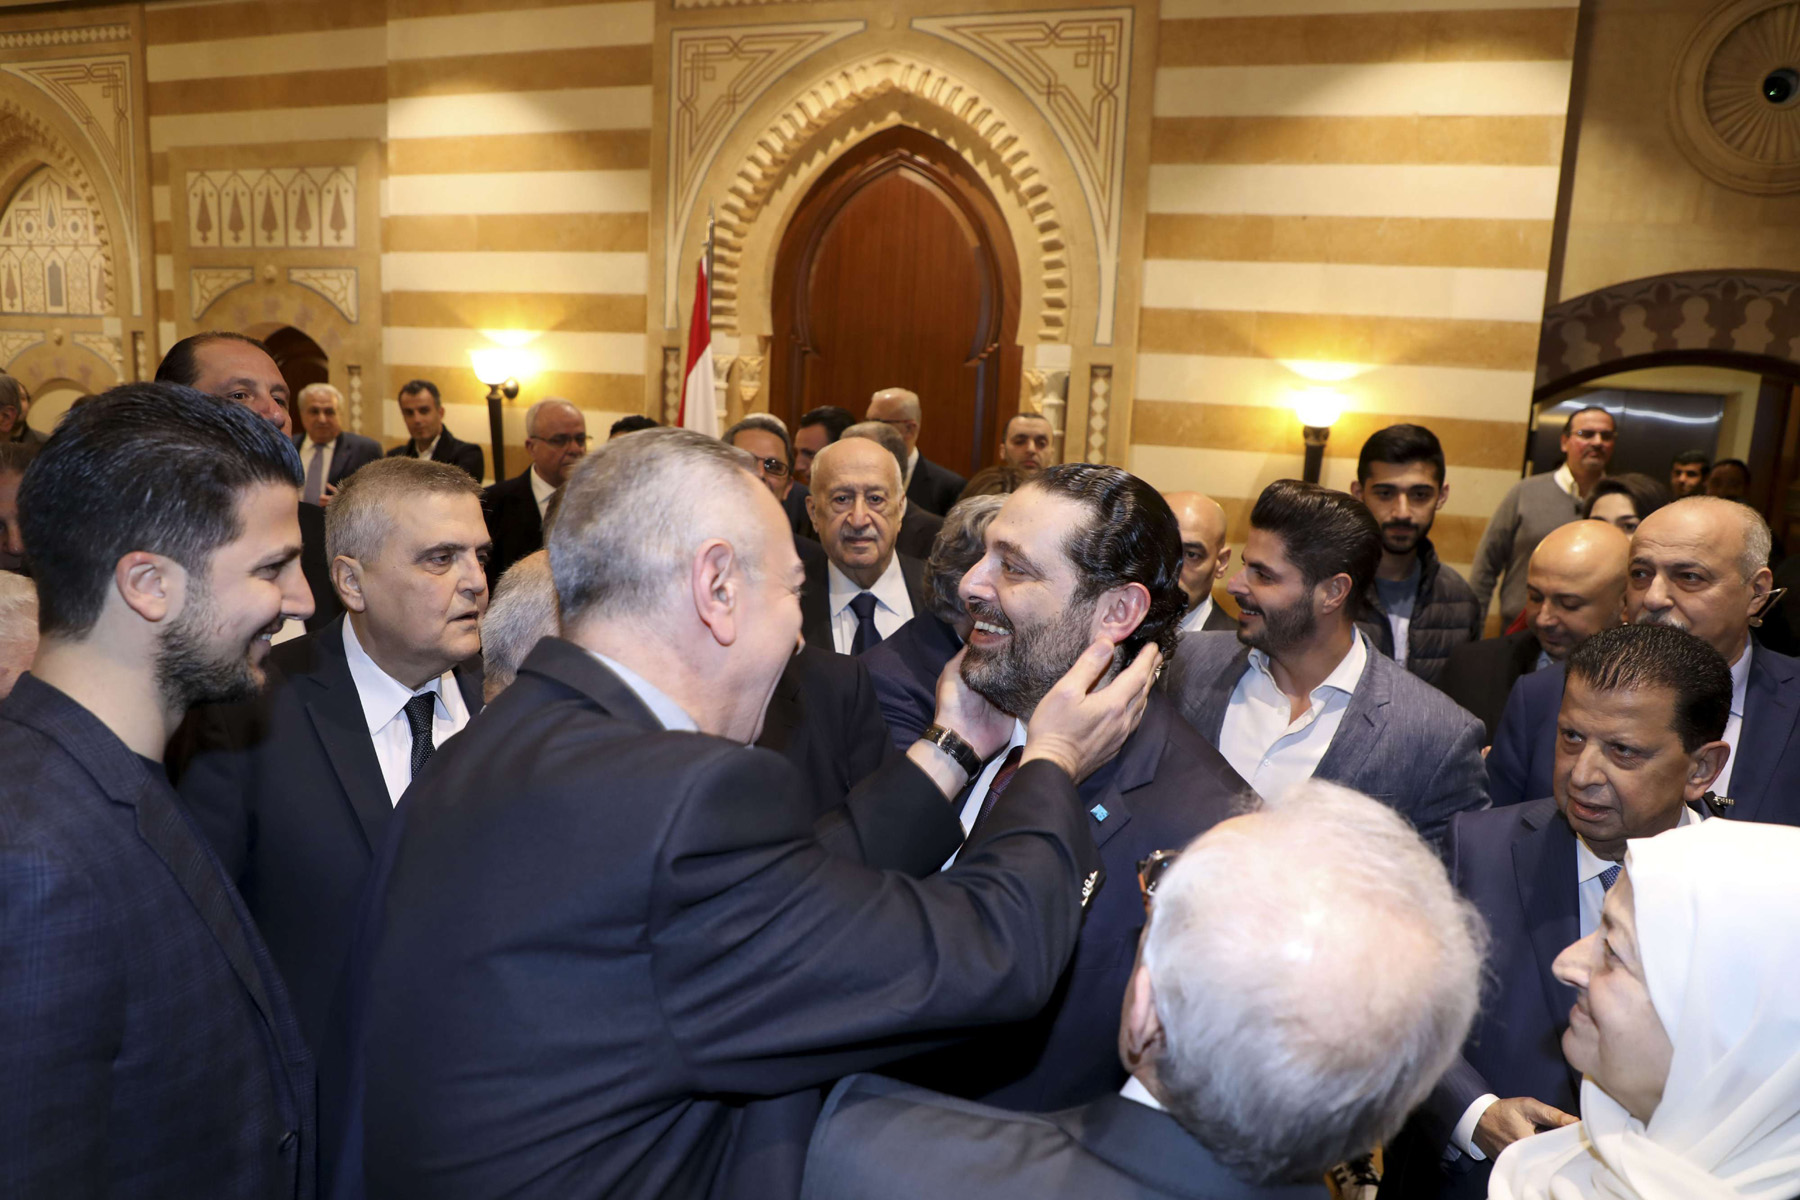 Lebanese Prime Minister Saad Hariri (C) stands among supporters after a news conference during which he announced the formation of a new government, January 31. (DPA)